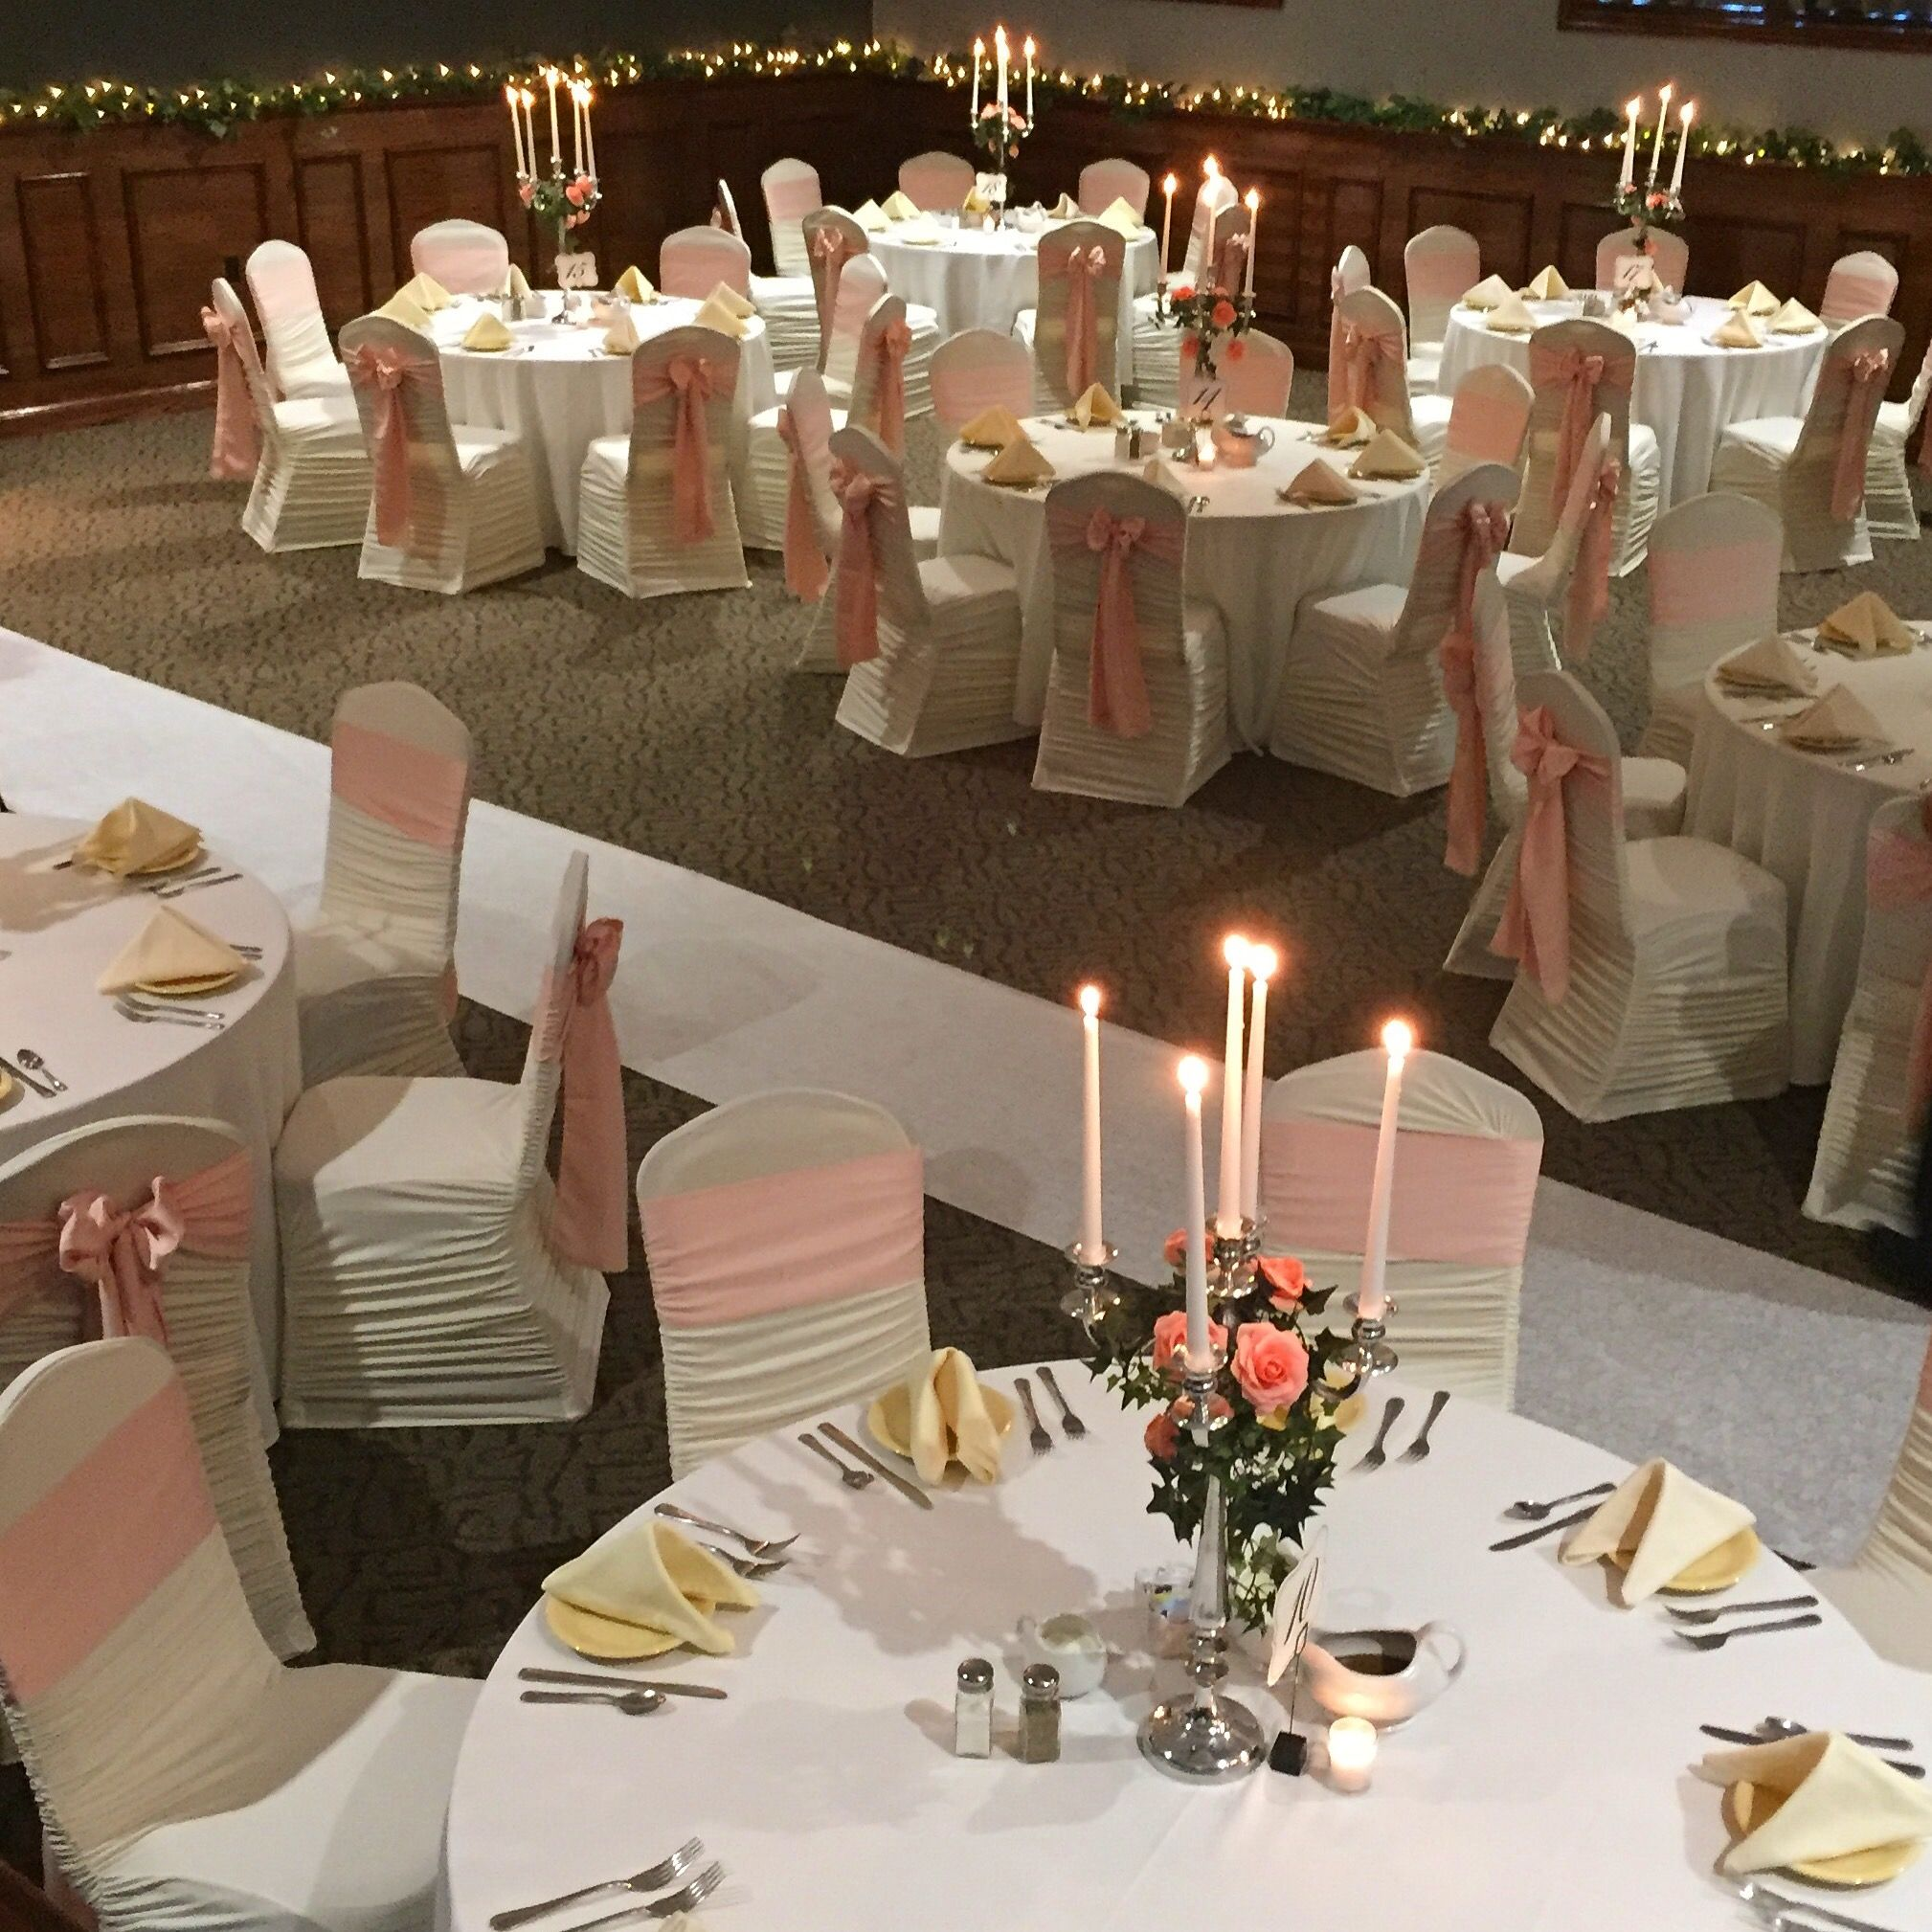 Weir Massie Ceremony & Reception Setup In The Beautiful